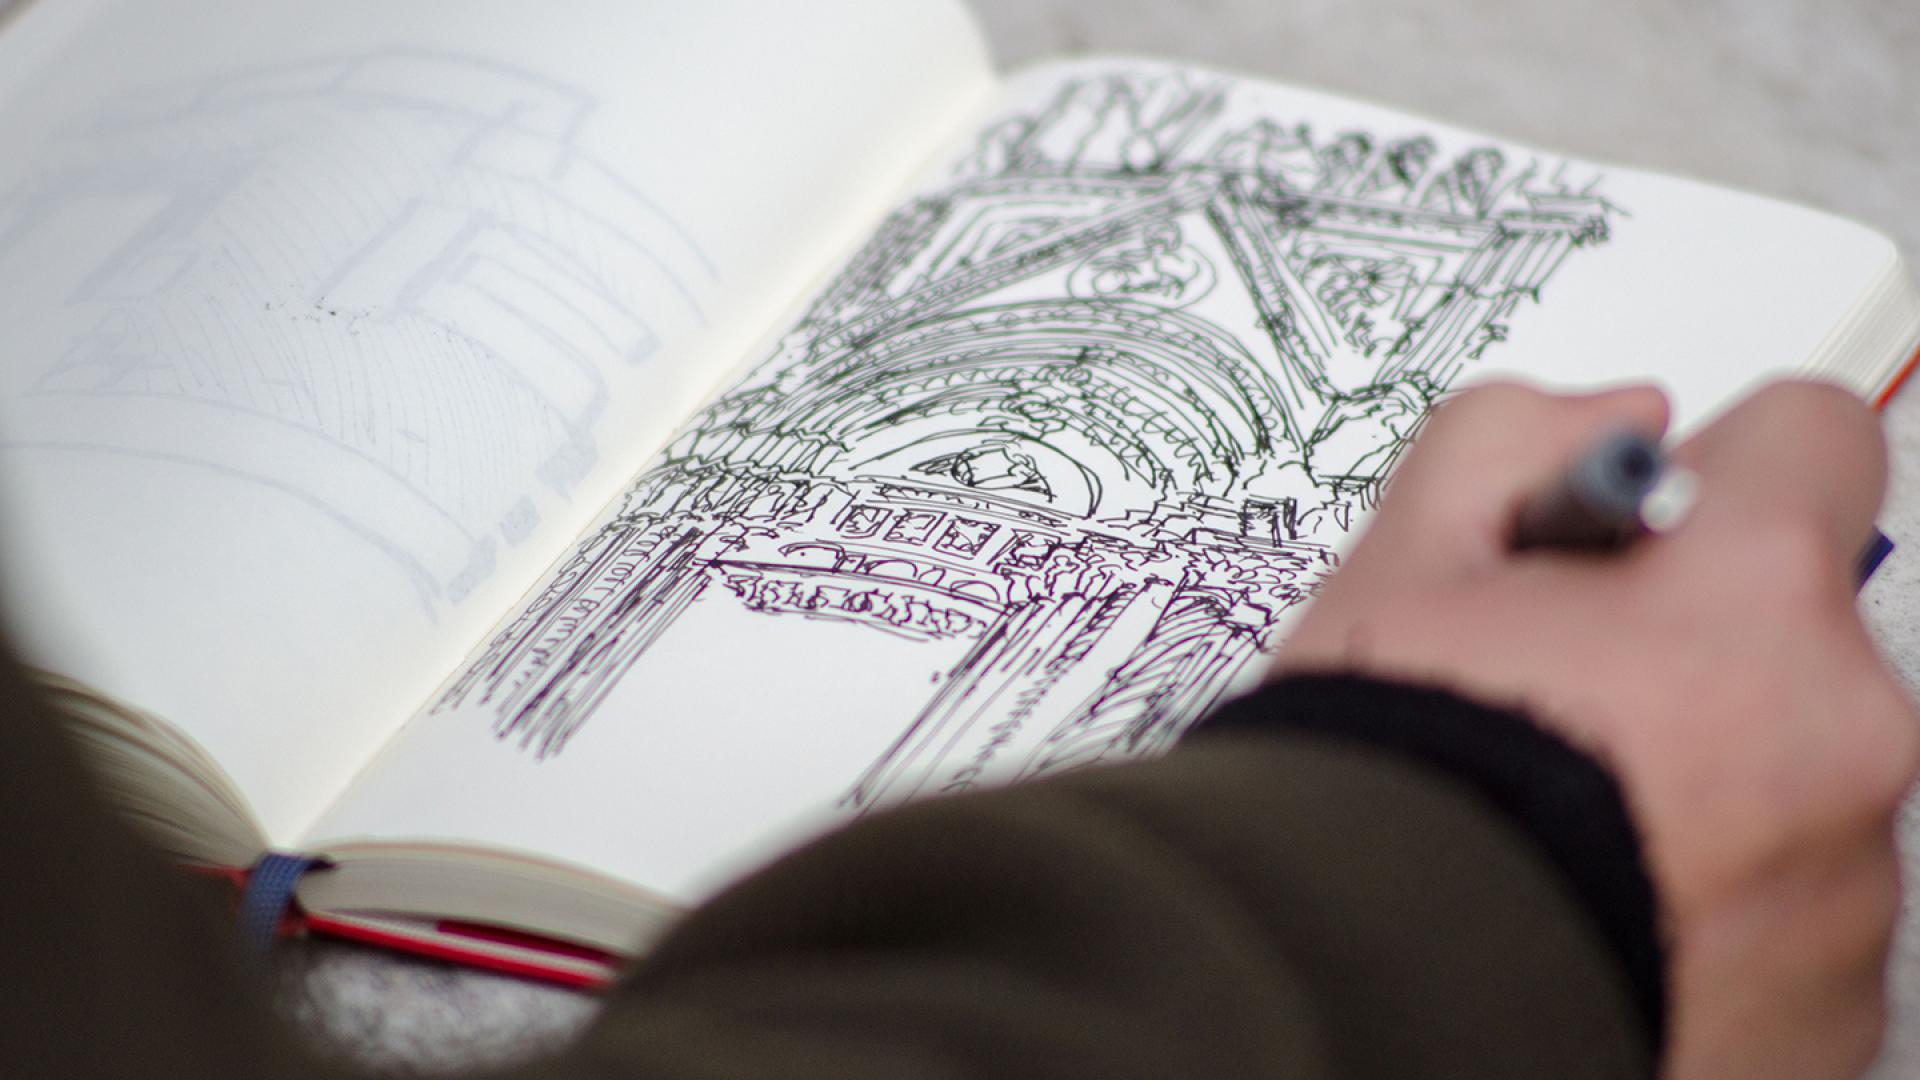 Hand sketching a Roman building in a sketchbook.